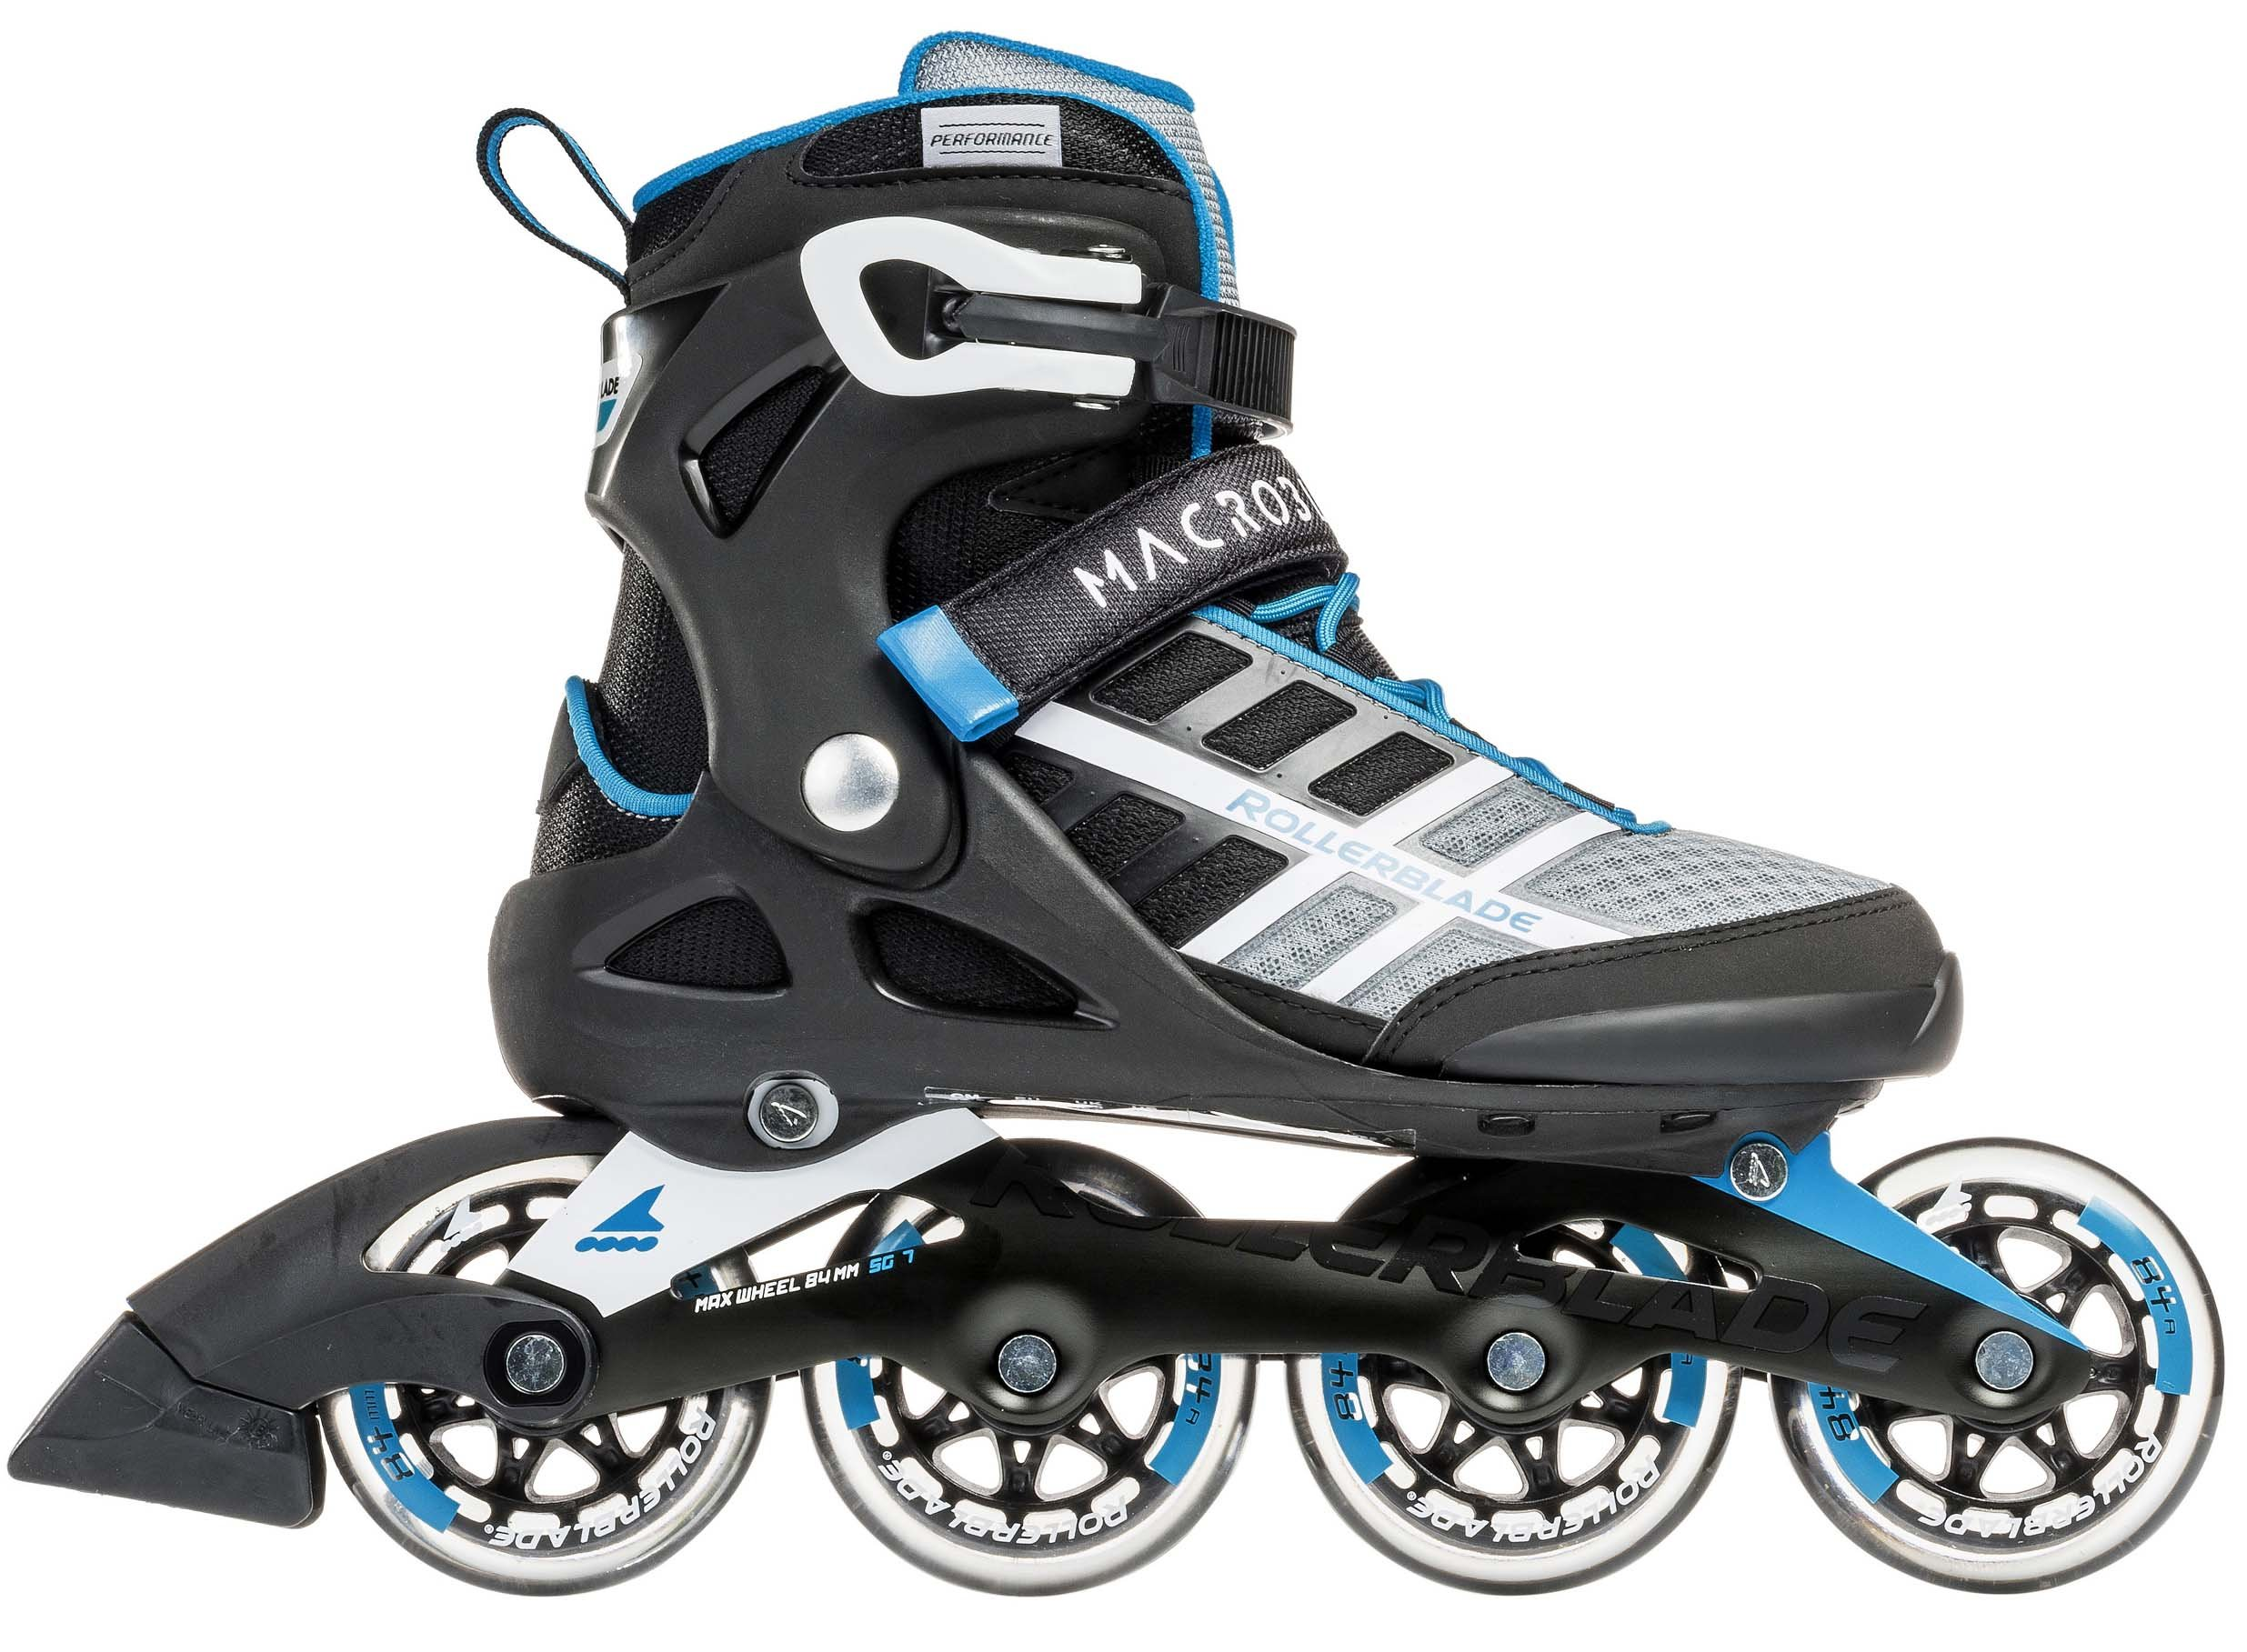 Rollerblade Macroblade 84 Womens Adult Fitness Inline Skate - White/Cyan Blue - 84 mm / 84A Wheels with SG7 Bearings - Performance Skates -US size 9.5, White/Cyan Blue, Size 9.5